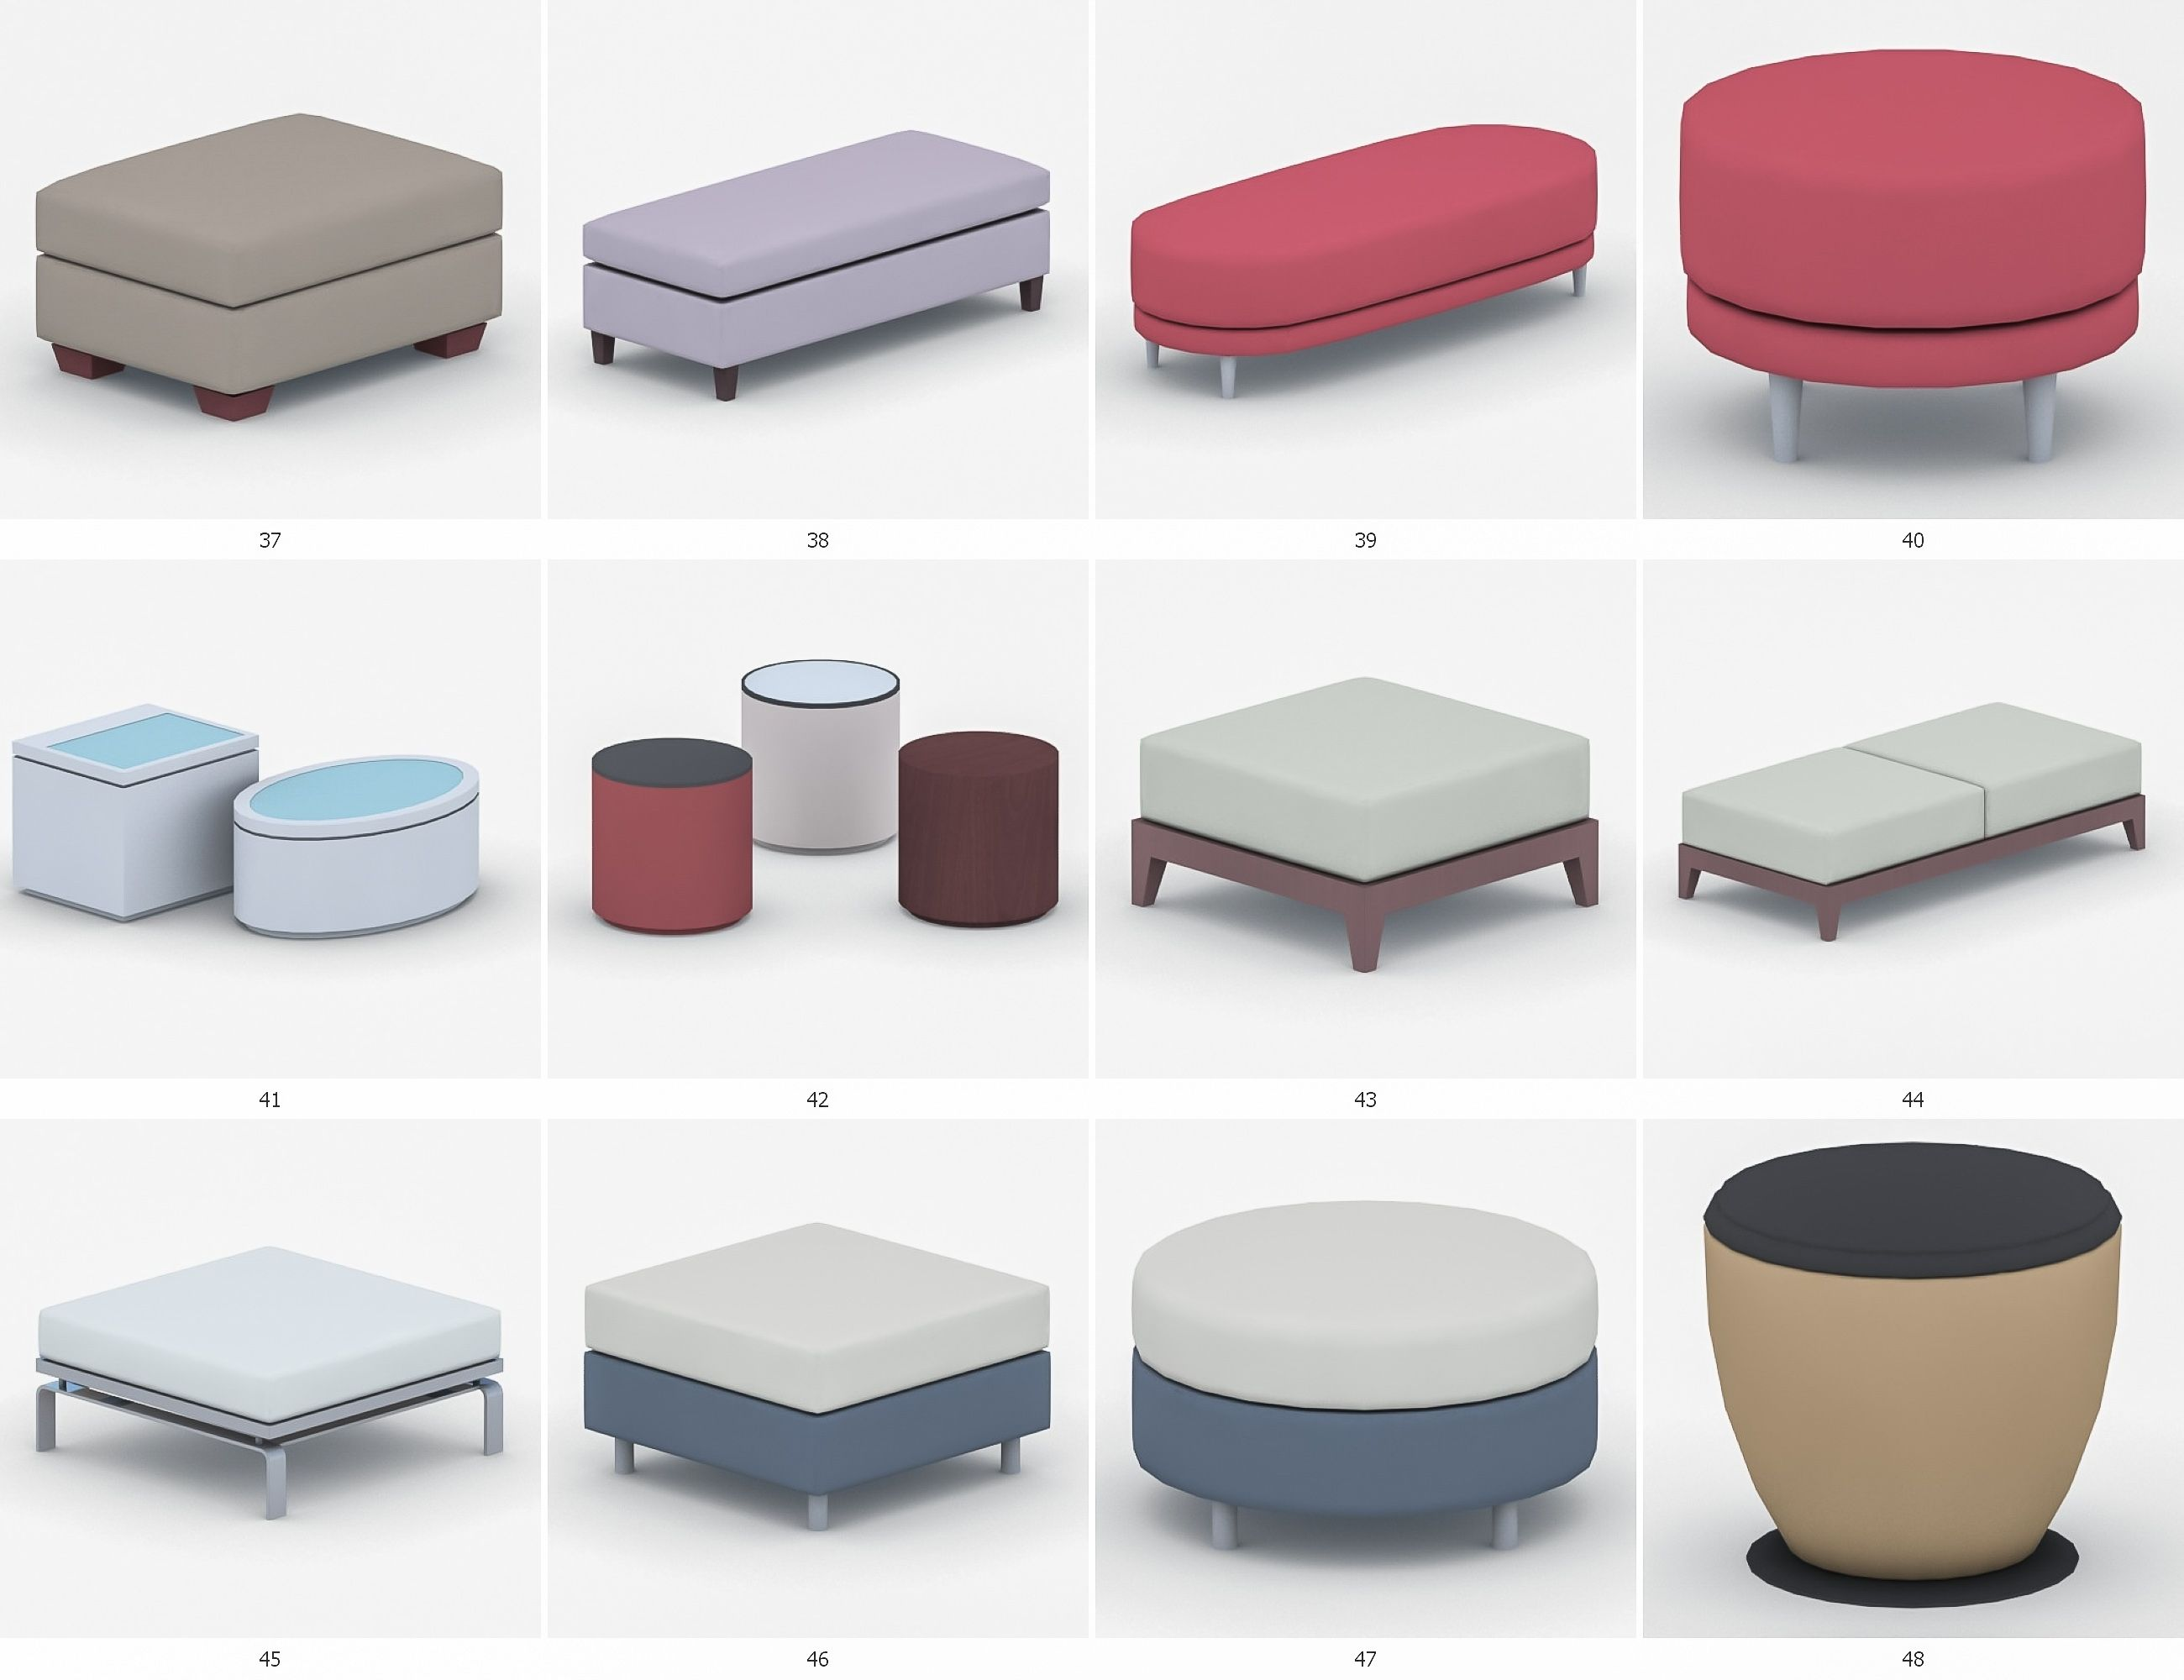 Strange Ottomans And Poufs Collection 50 Products Poufs Short Links Chair Design For Home Short Linksinfo